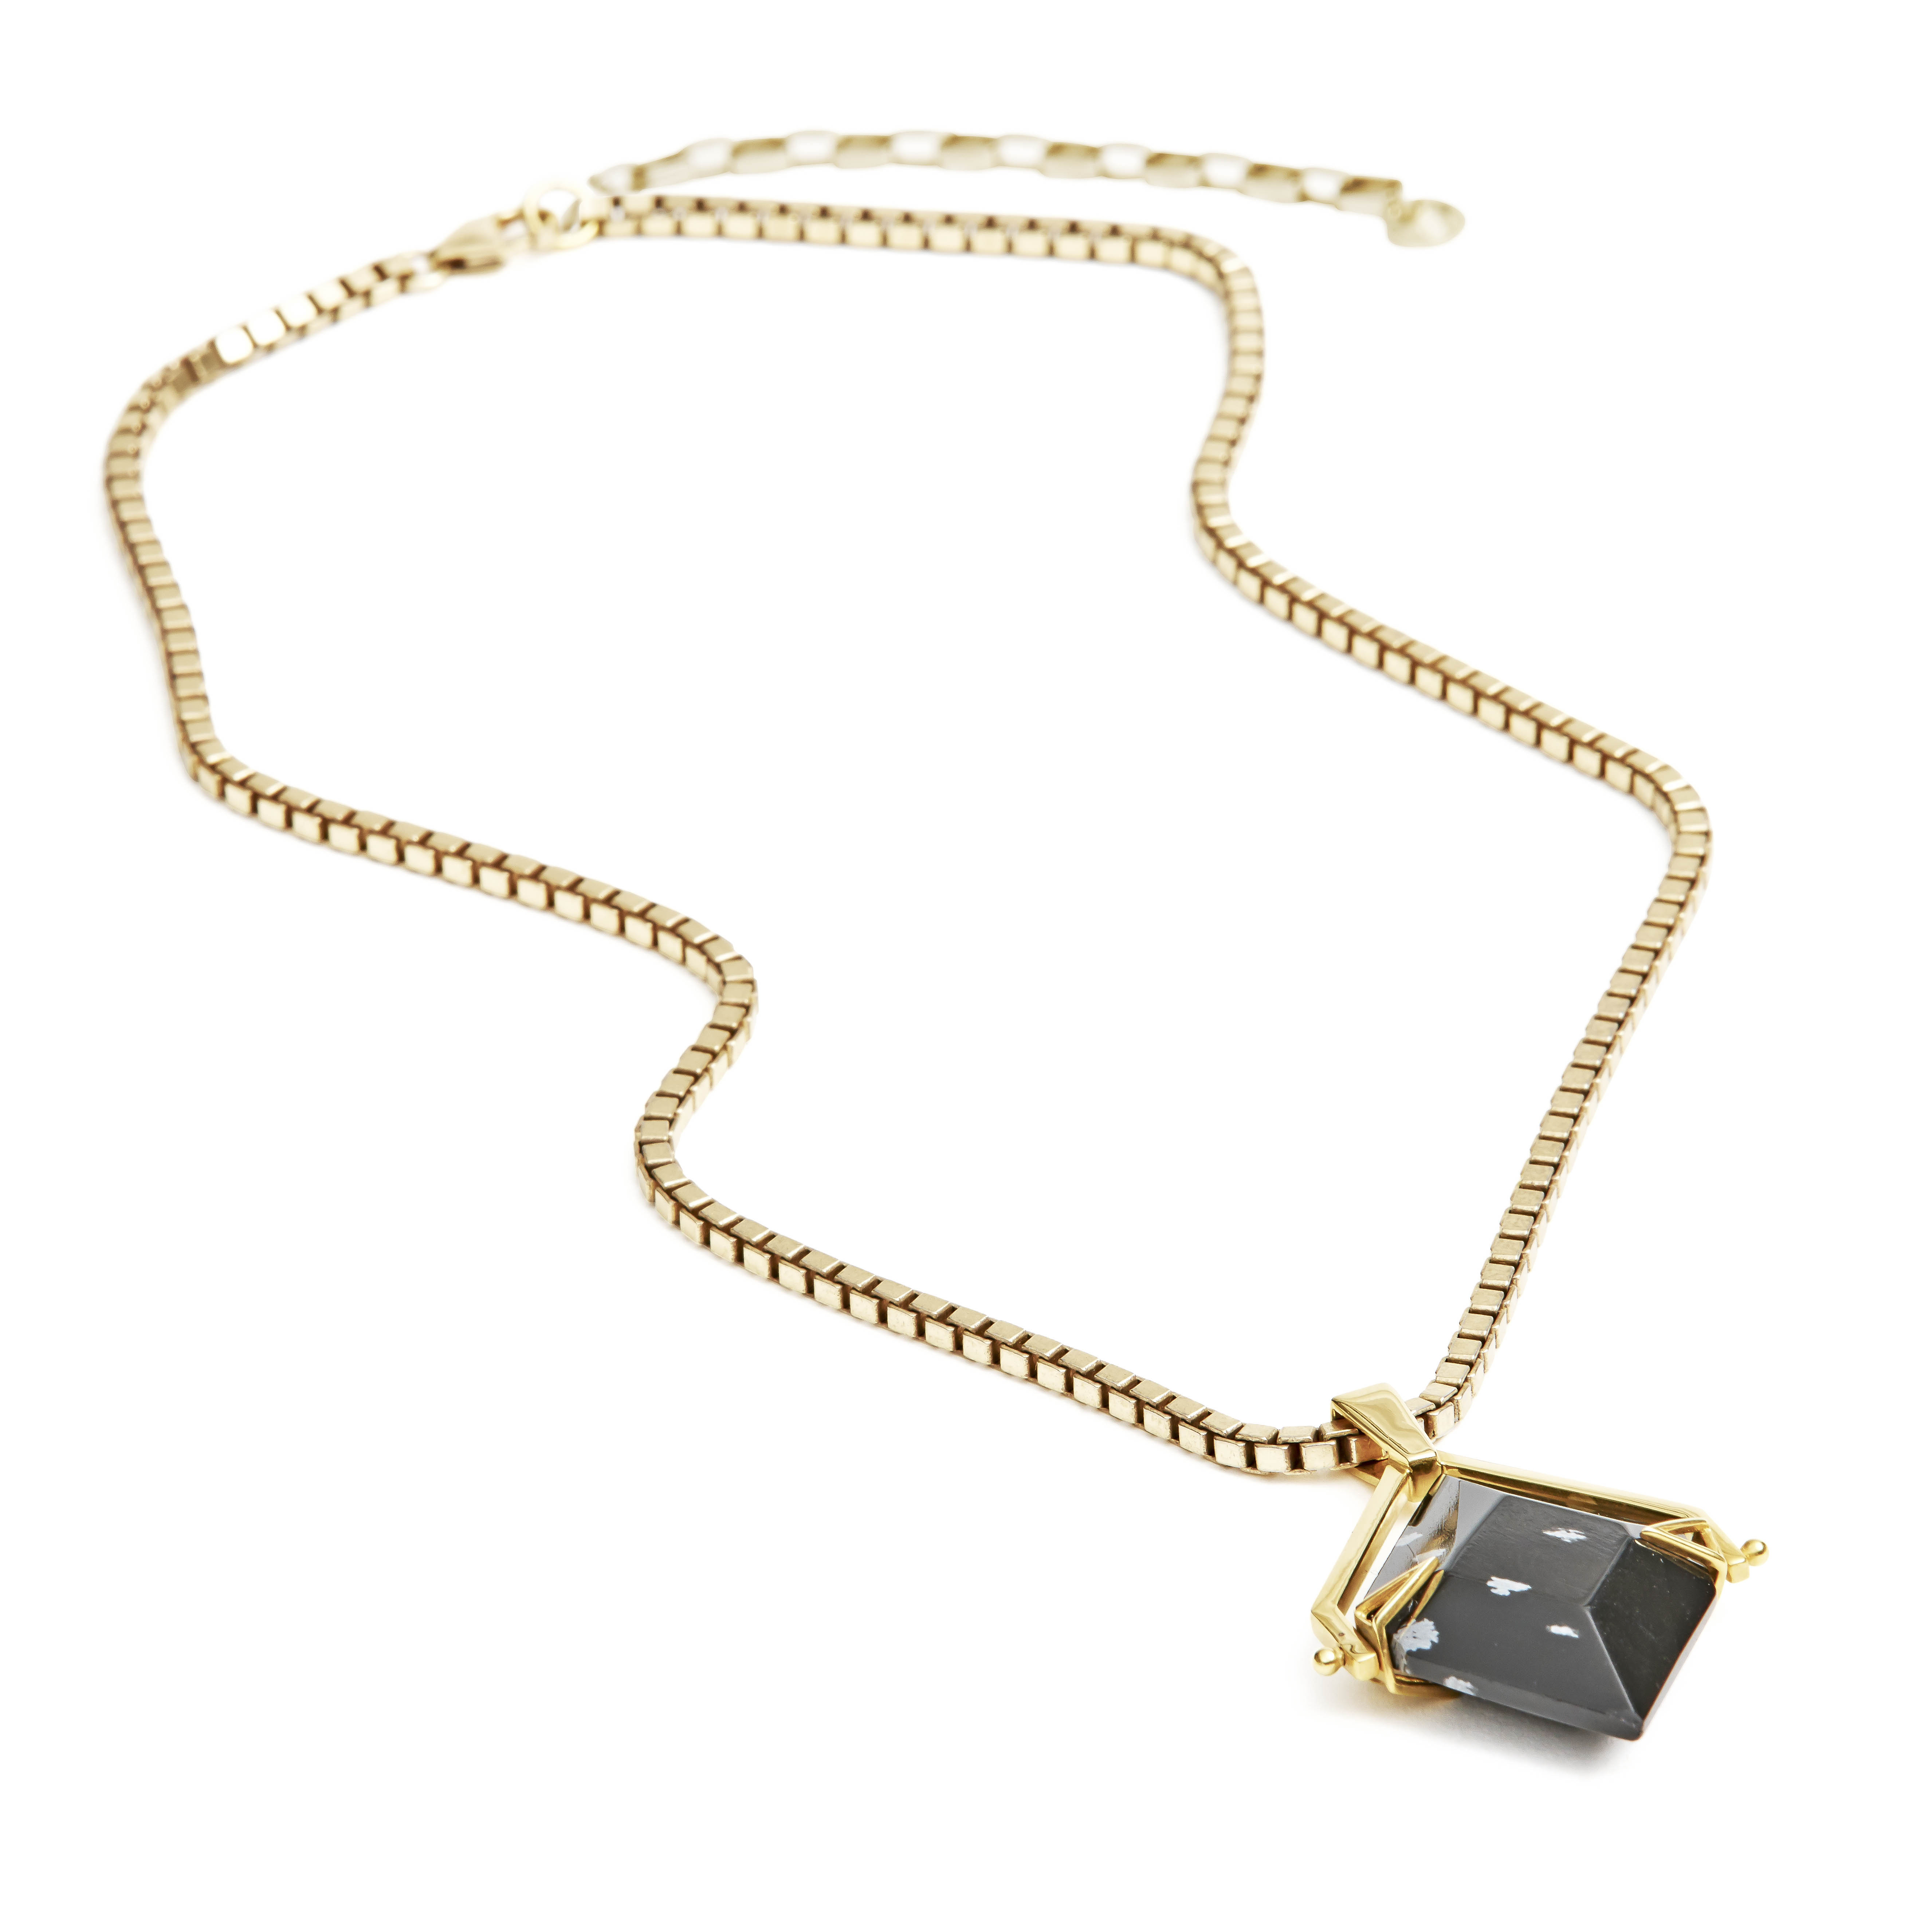 obsidian-gold-necklace-2